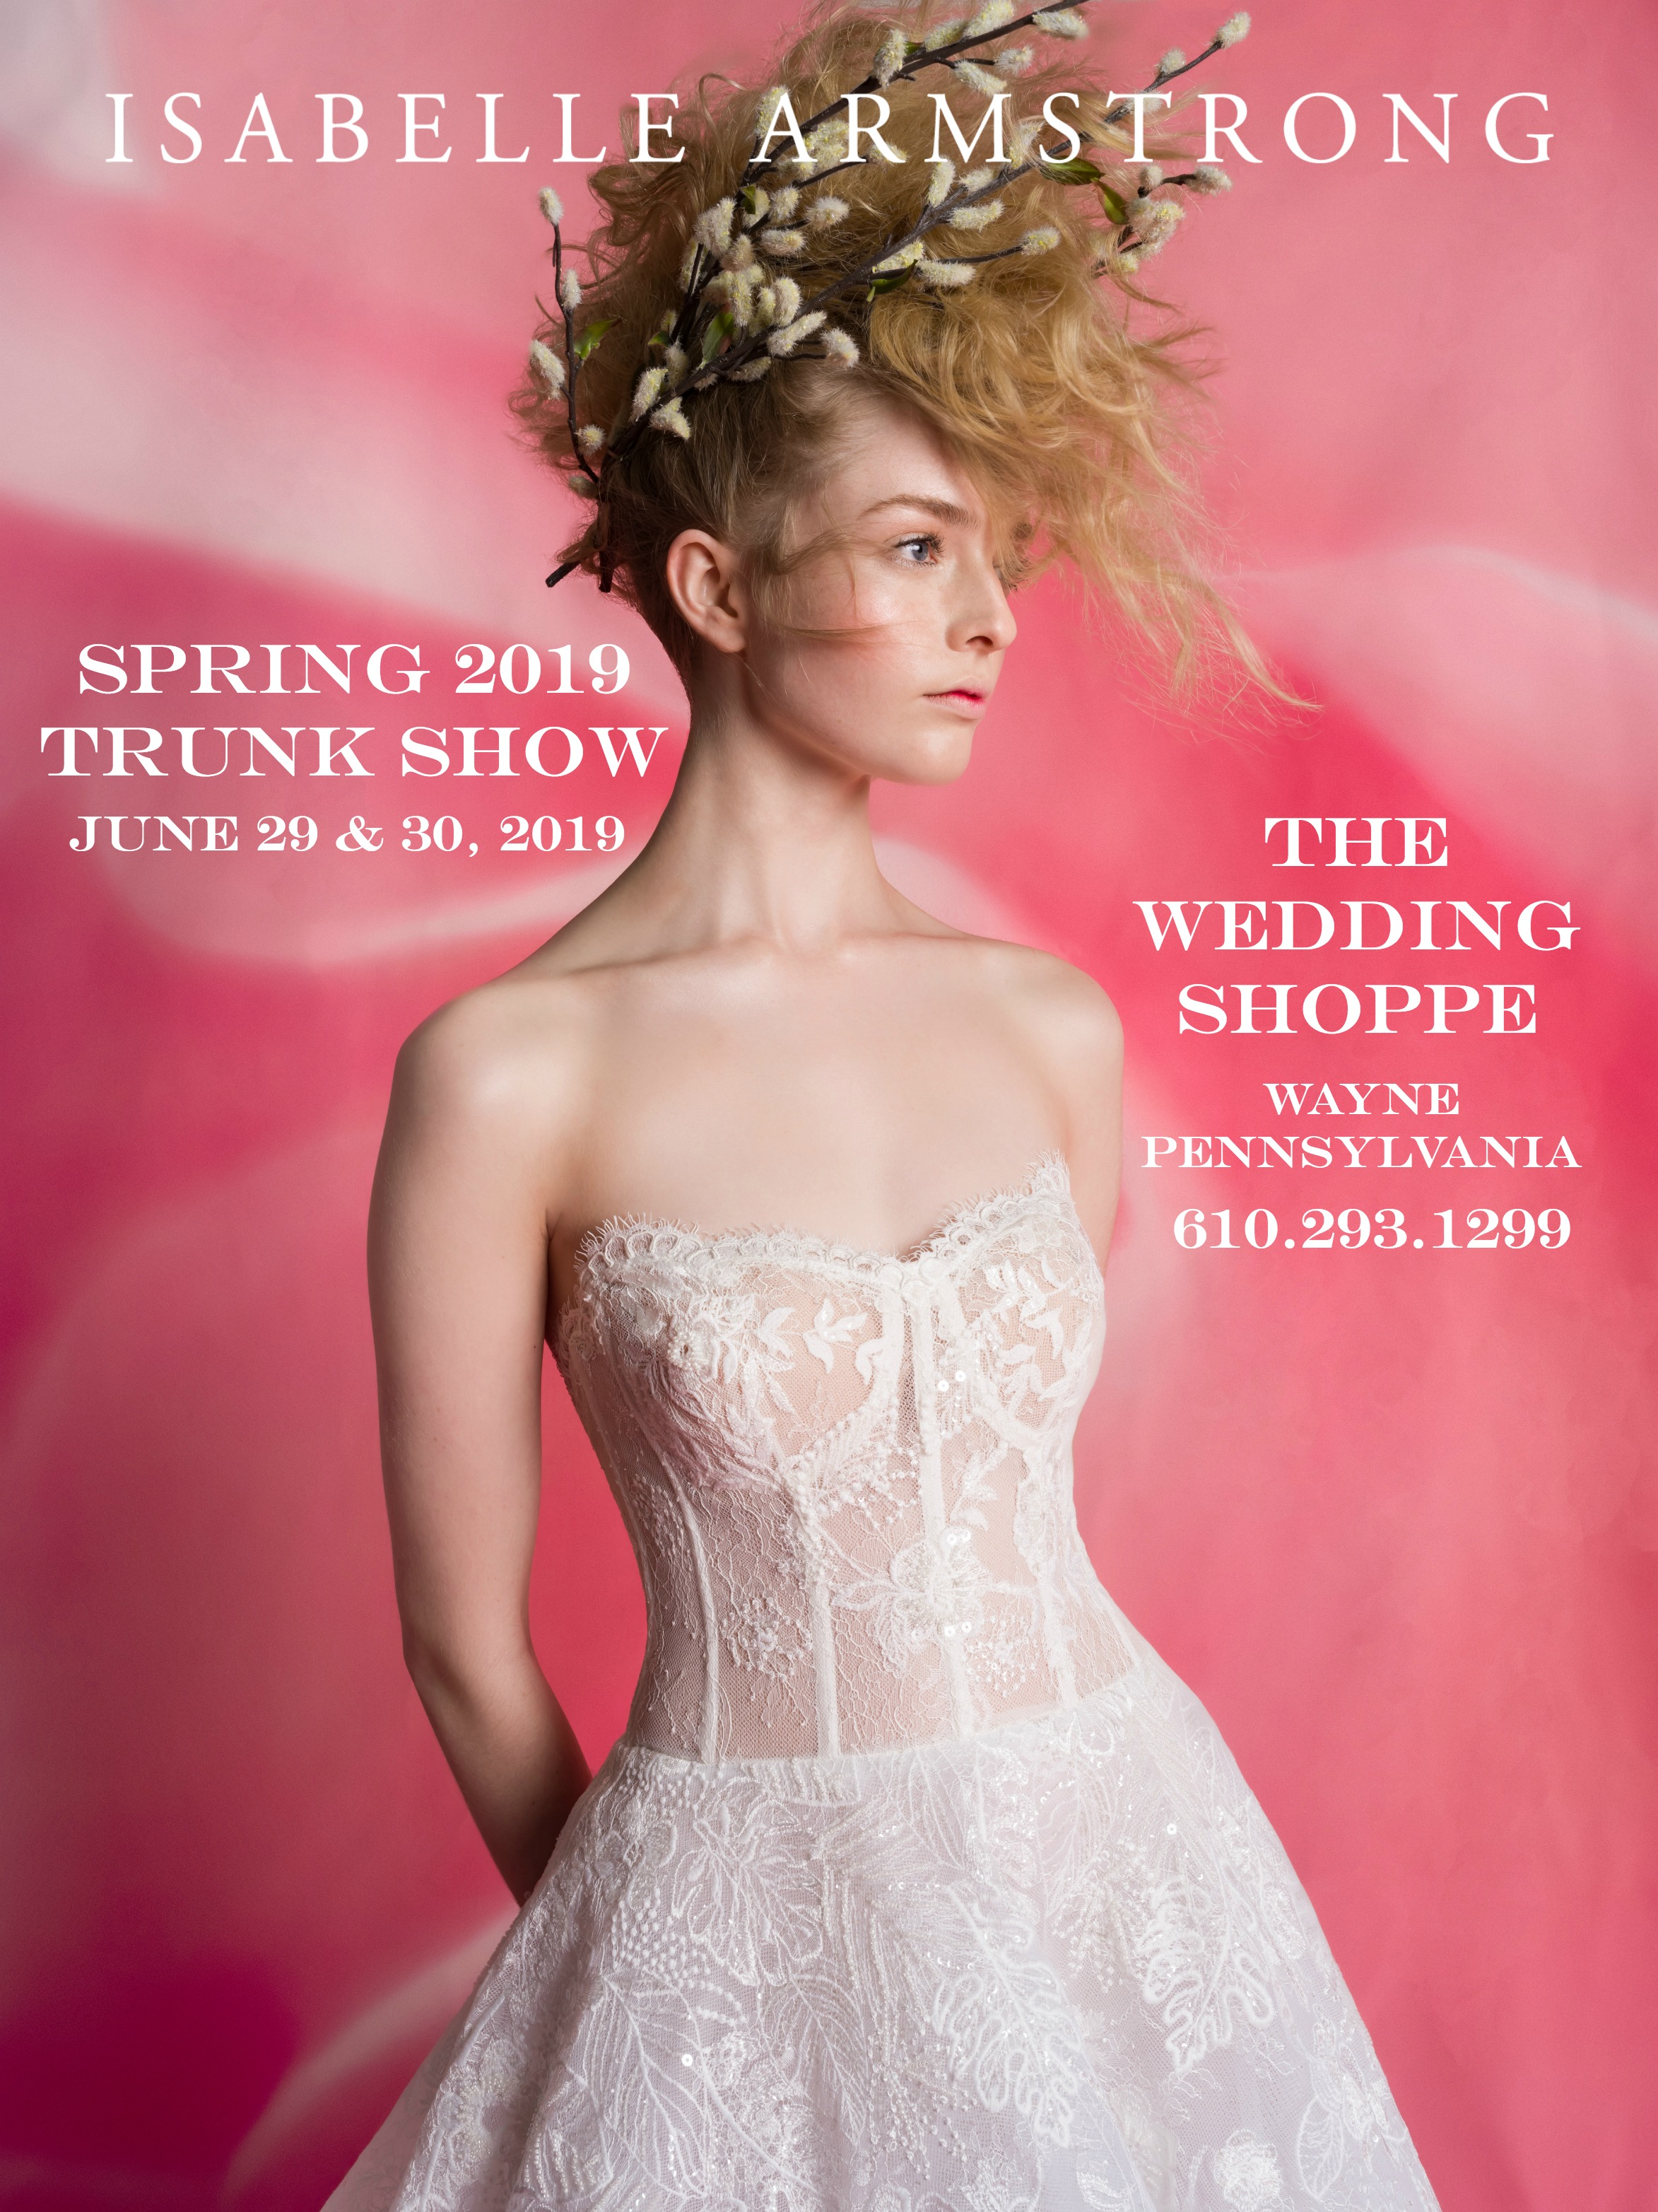 IA TS - WEDDING SHOPPE 6-29-18.jpg